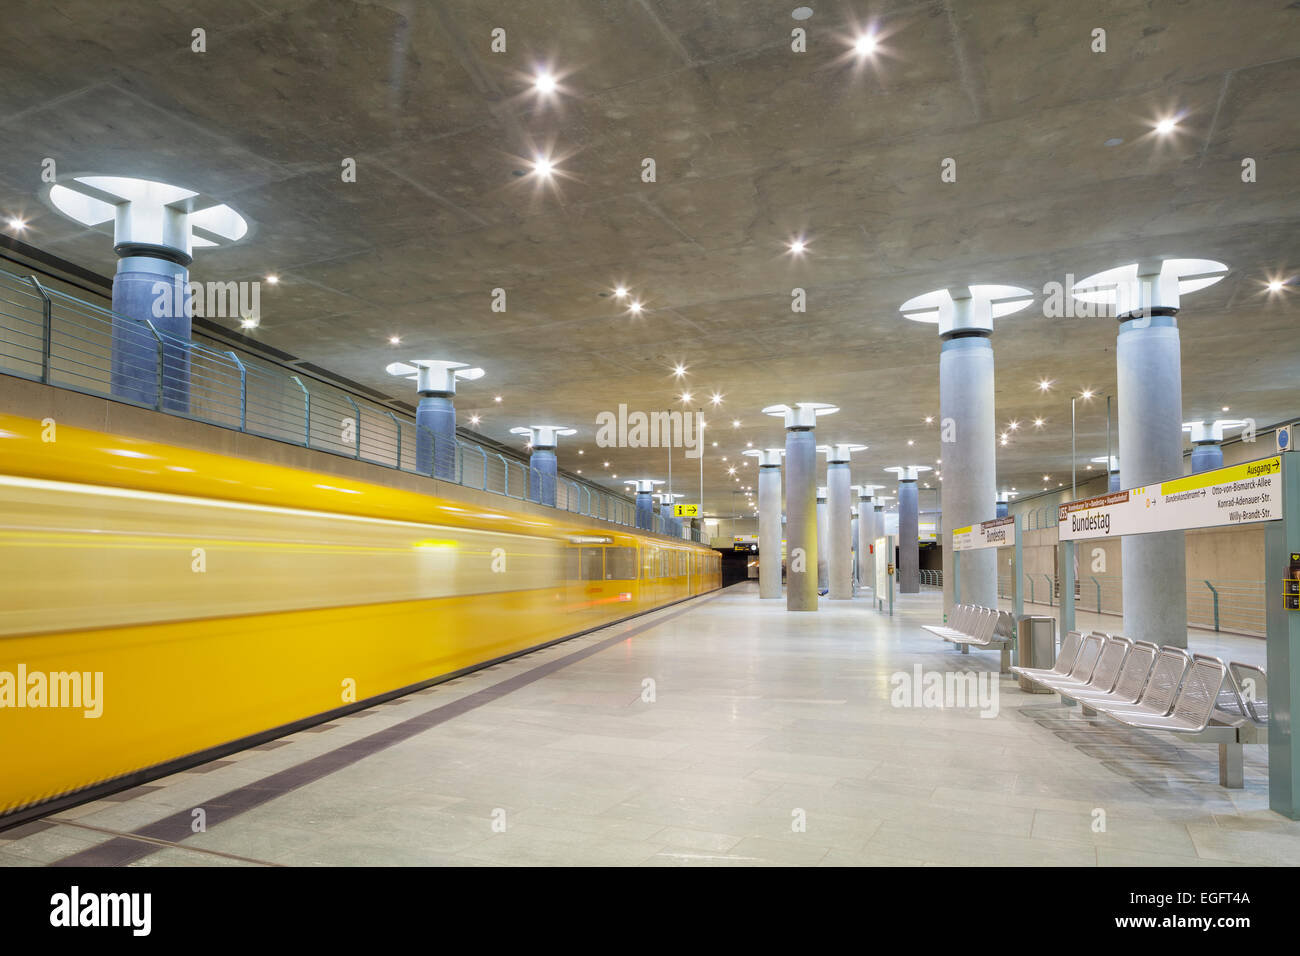 bundestag-u-bahn-station-berlin-germany-